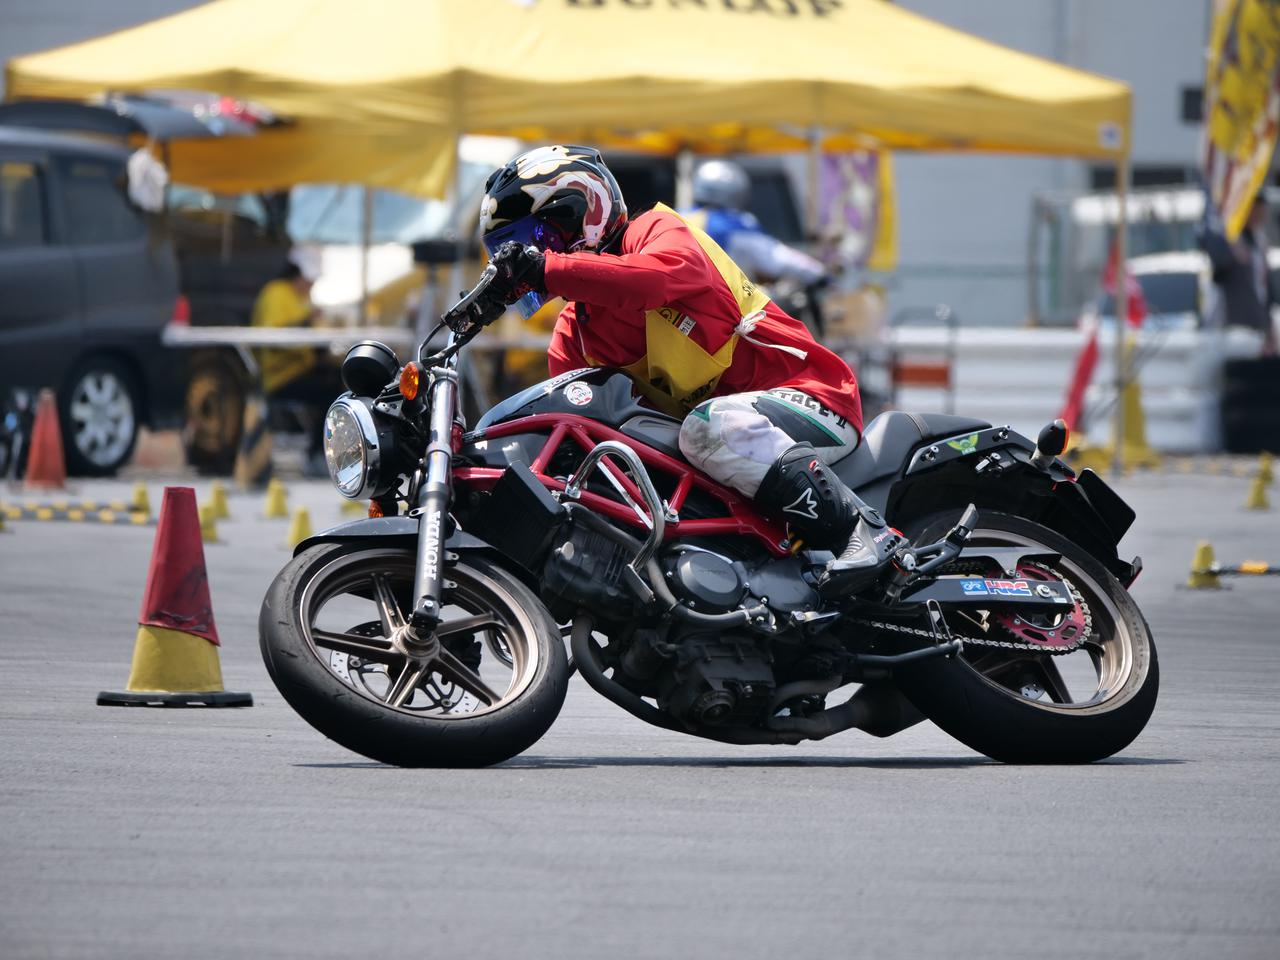 Images : 17番目の画像 - ジムカーナで活躍するホンダ「VTR」をもっと見る! - LAWRENCE - Motorcycle x Cars + α = Your Life.